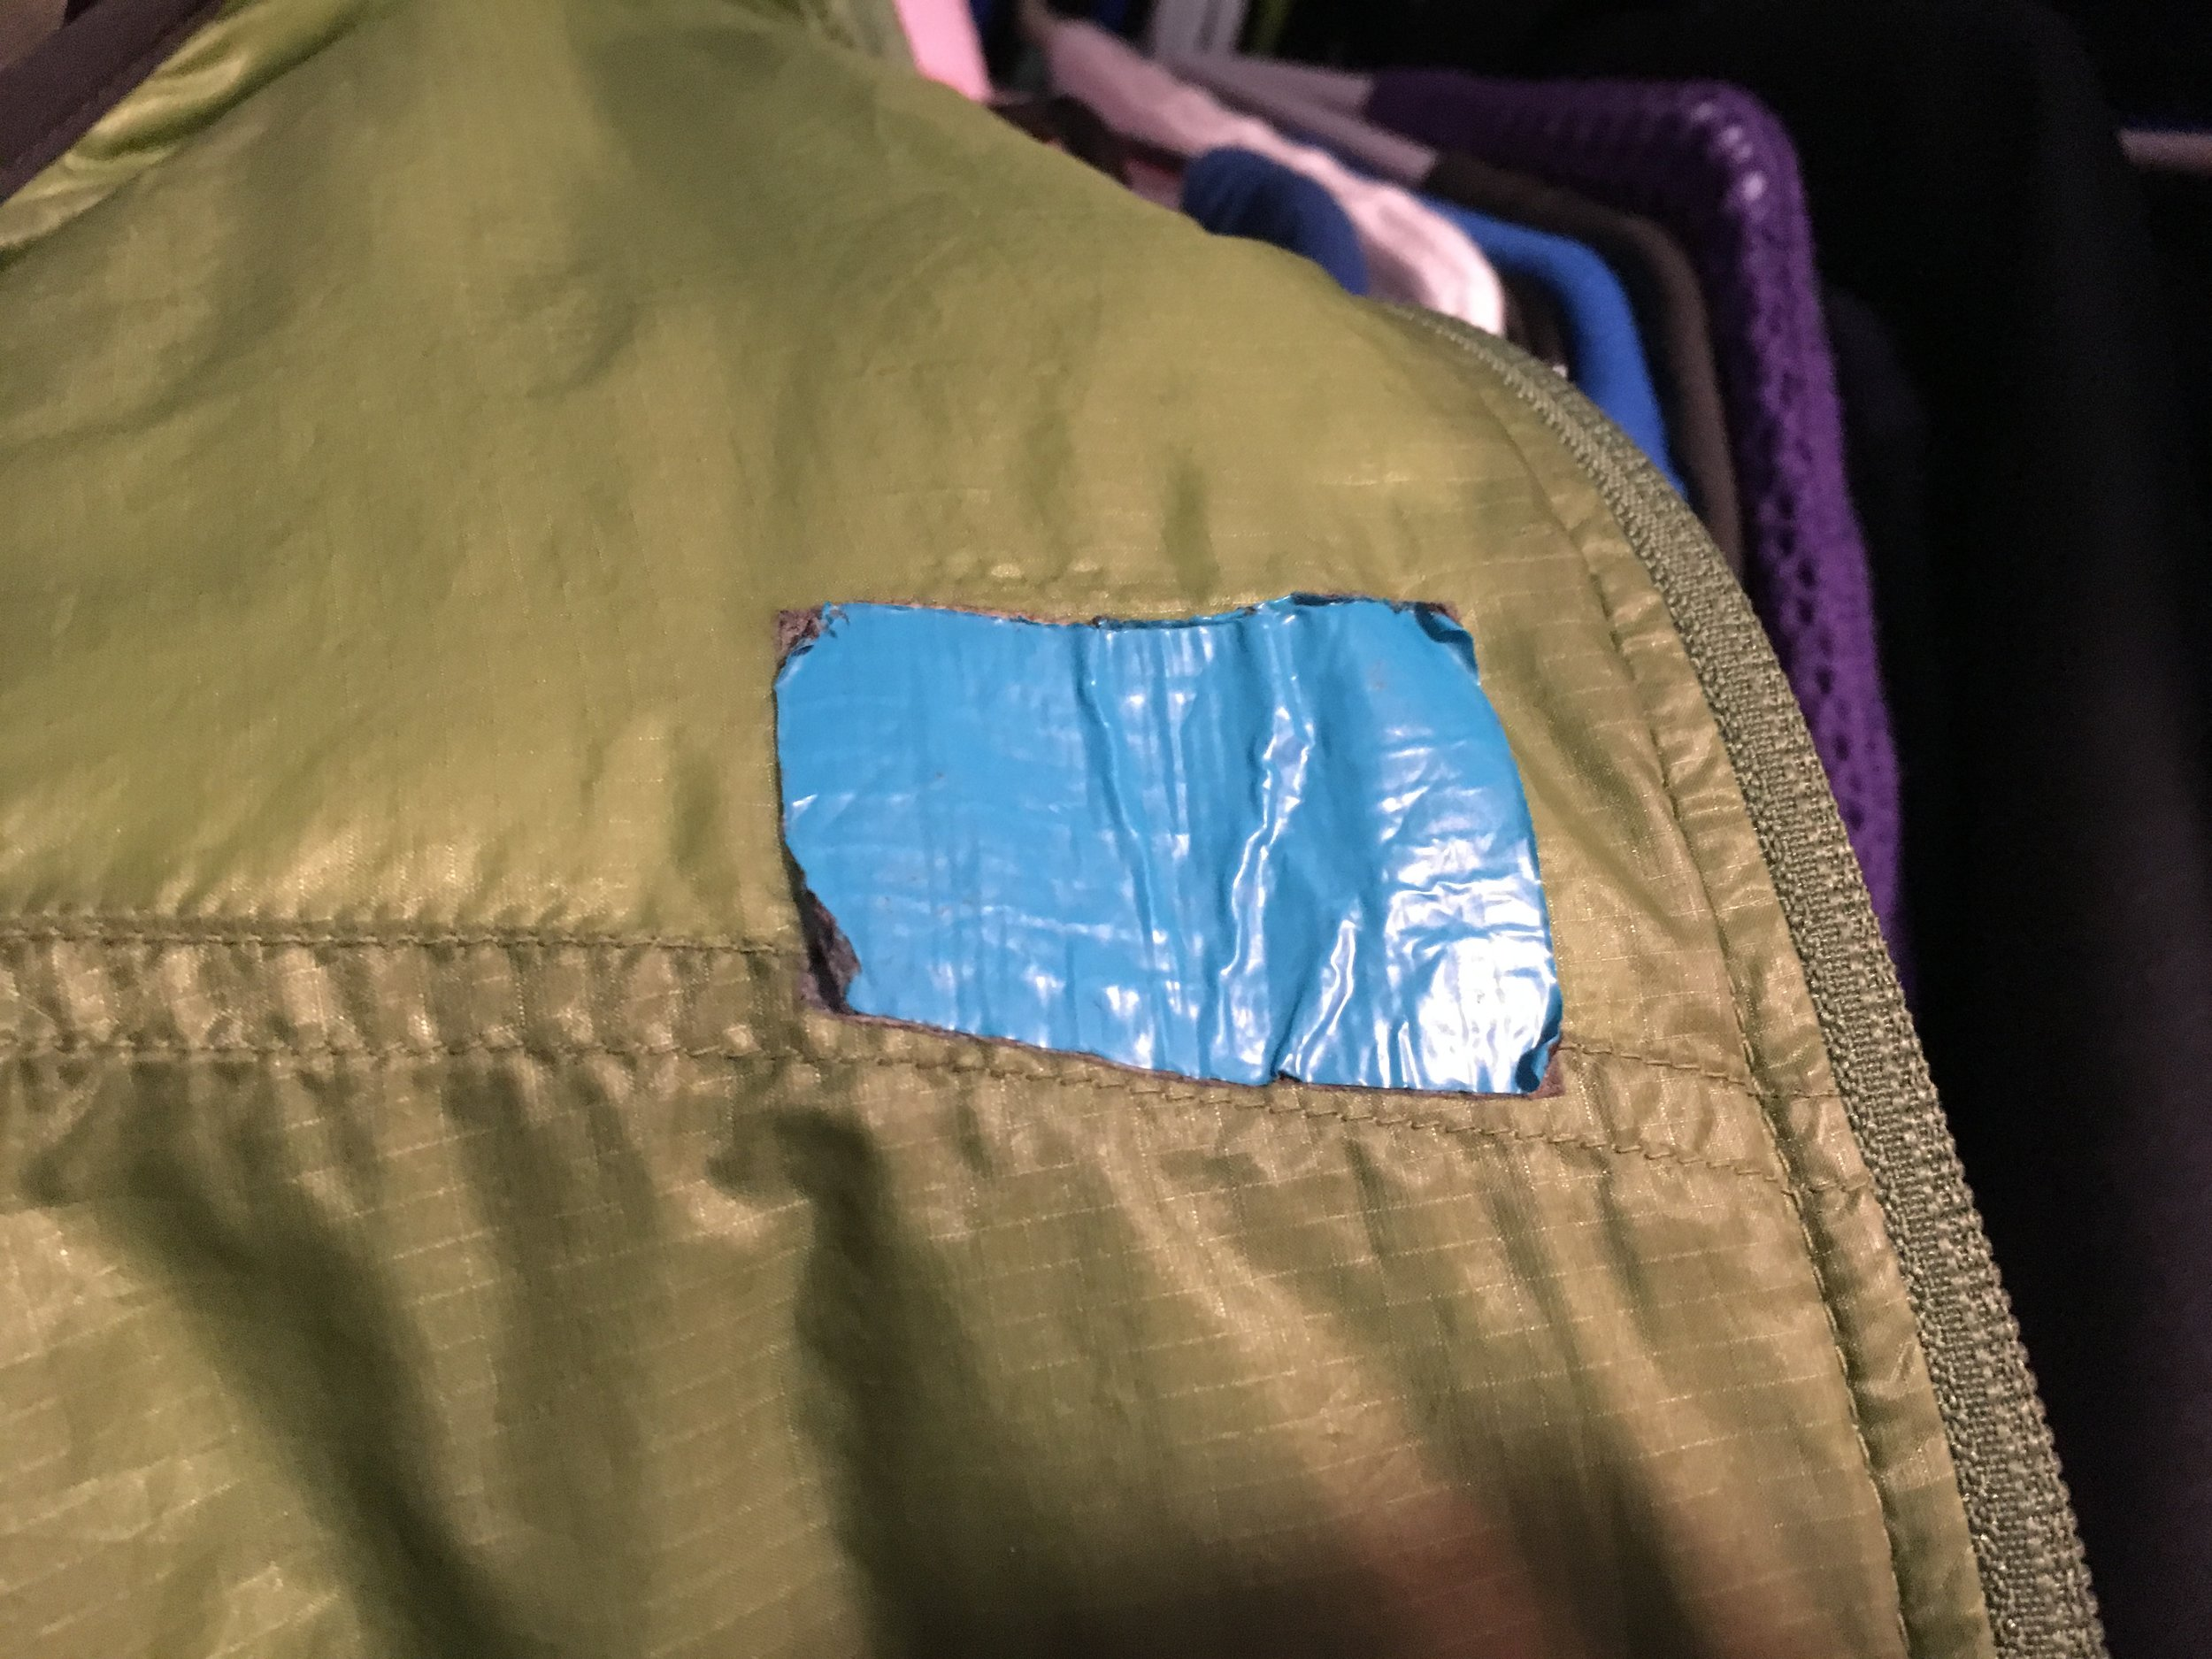 A four year old duct tape patch. It is still sticking but is peeling back and leaving adhesive. Again, my choice of color could have been better. Alas, I am stuck with this color since peeling this off will leave a mess I don't want to deal with.